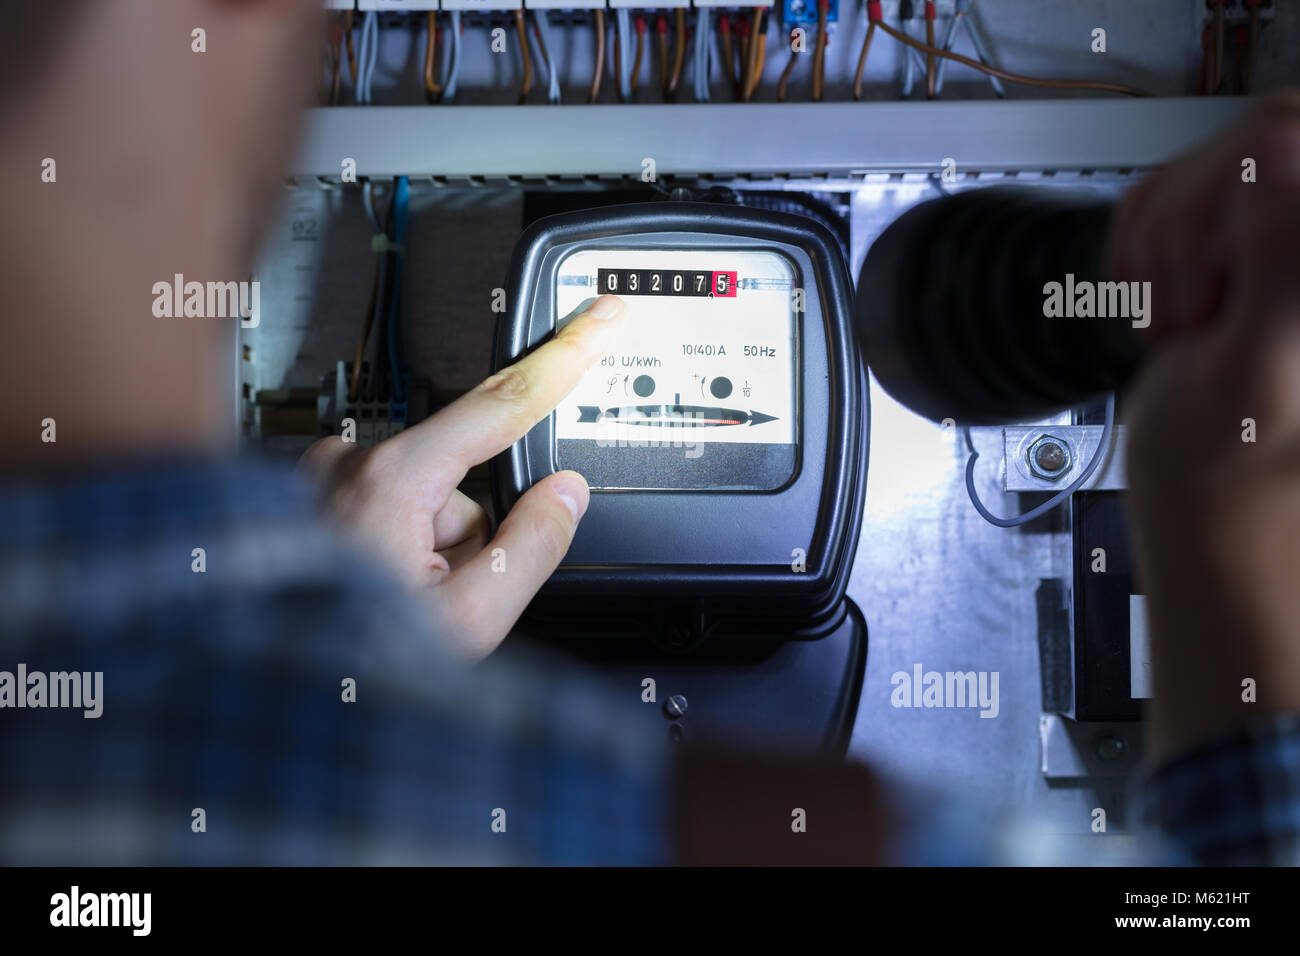 Person's Finger Pointing To Electric Meter Reading Using Flash Light - Stock Image